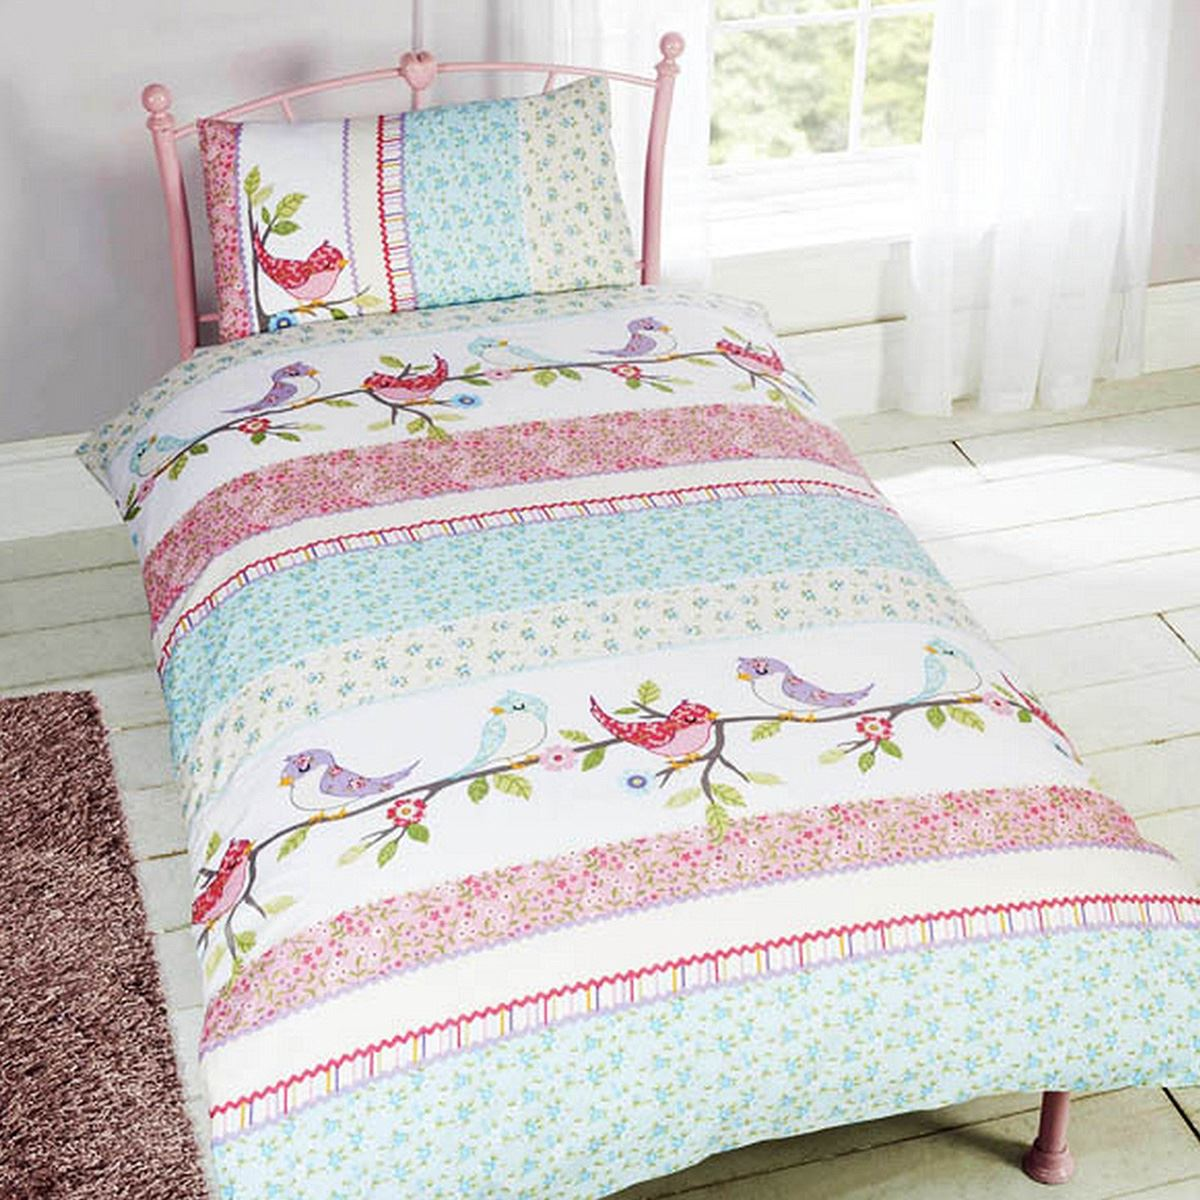 Girls Bedding Girls Single Duvet Cover Sets Bedding Unicorn Flower Horse